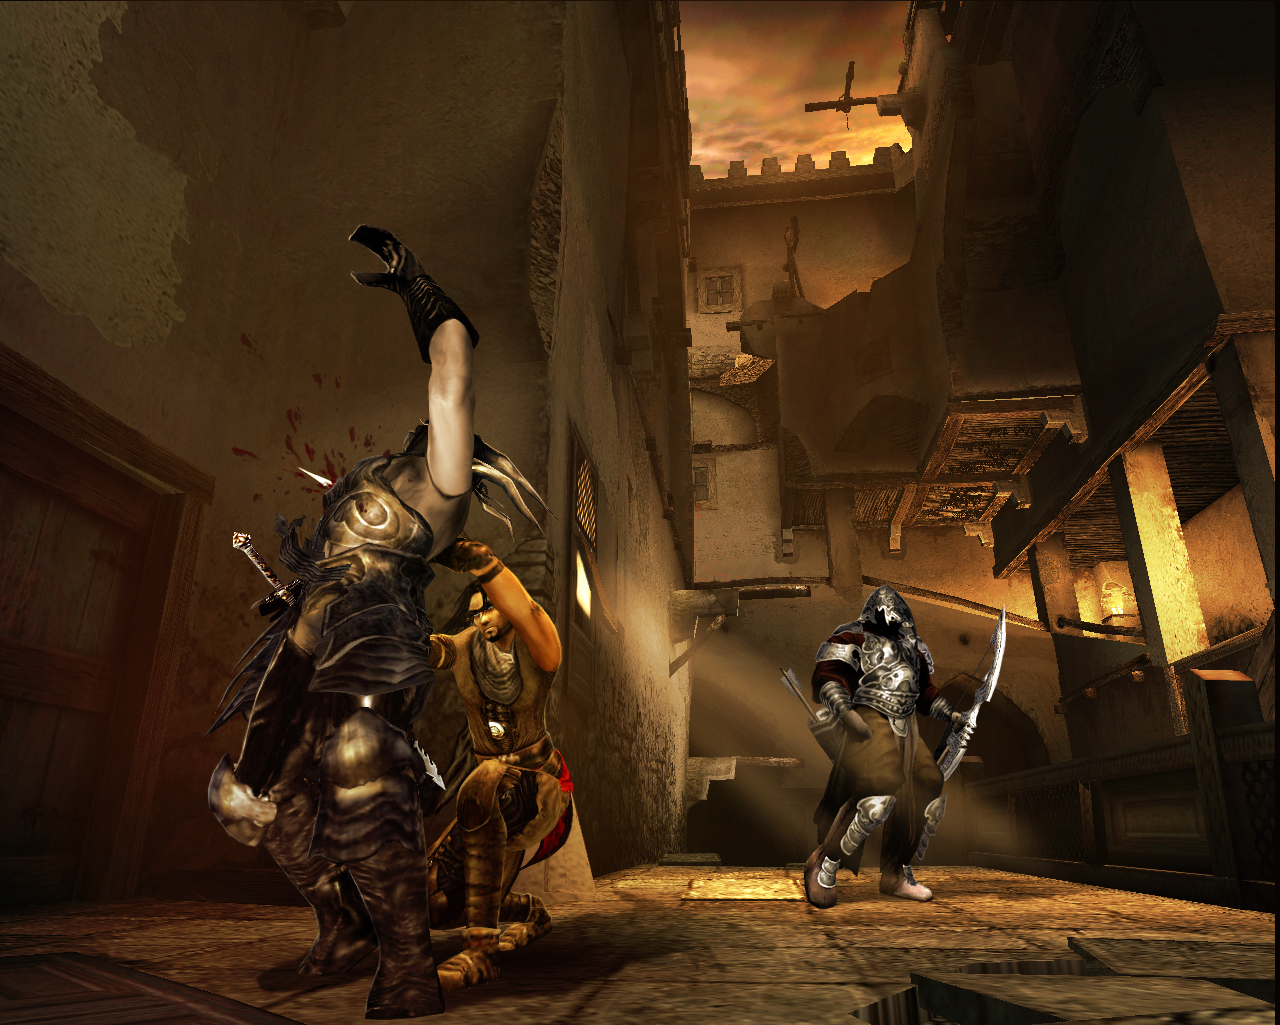 Prince of Persia: The Two Thrones screenshot 2